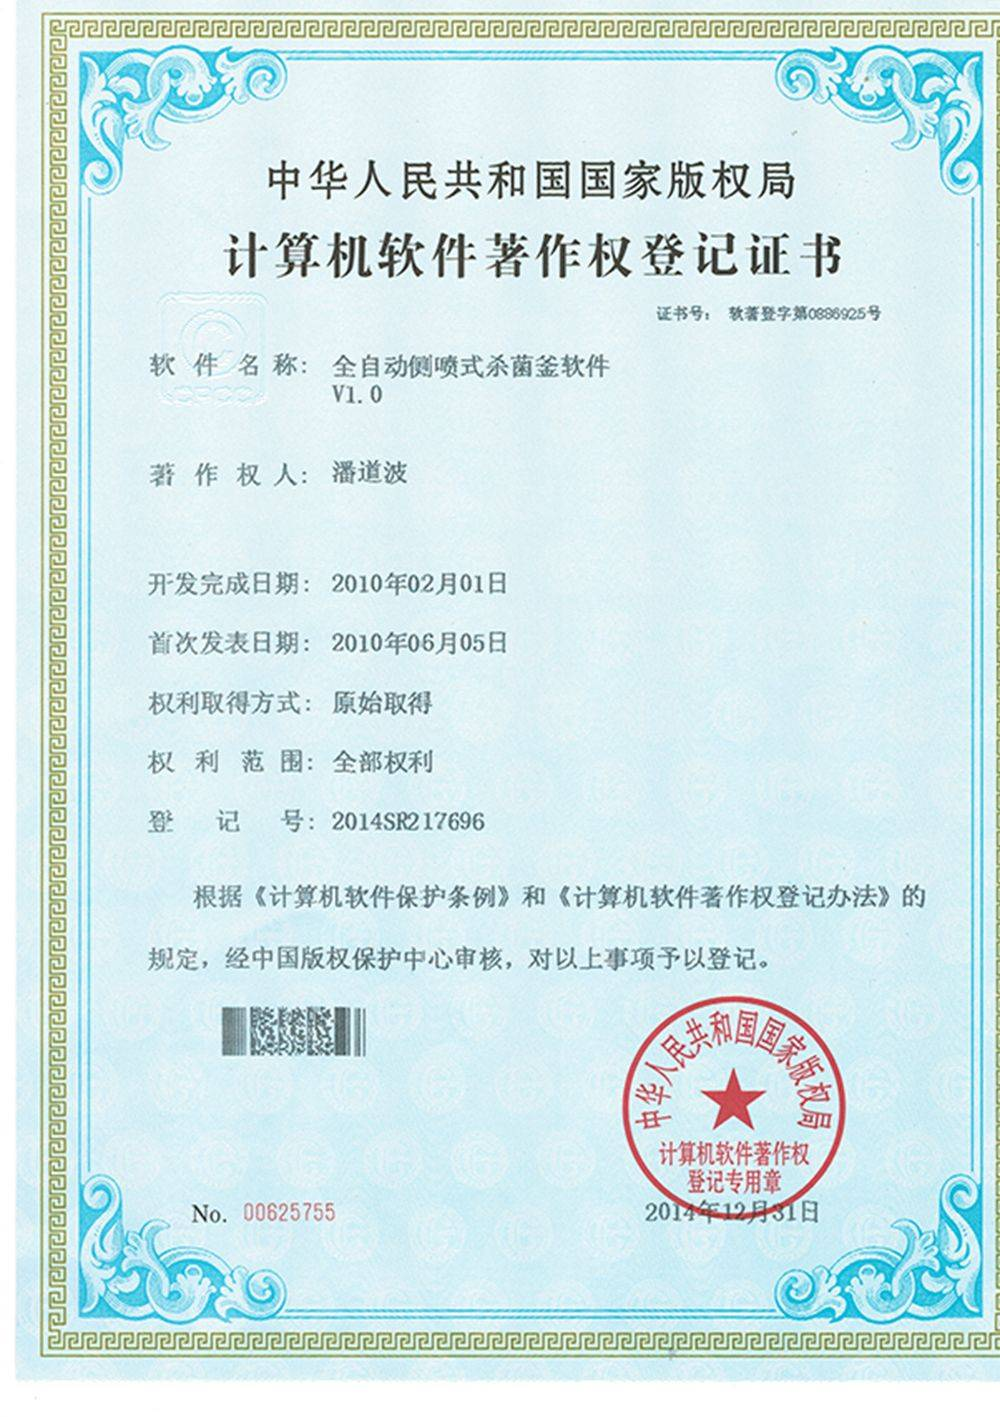 Side spray sterilization kettle software copyright certificate